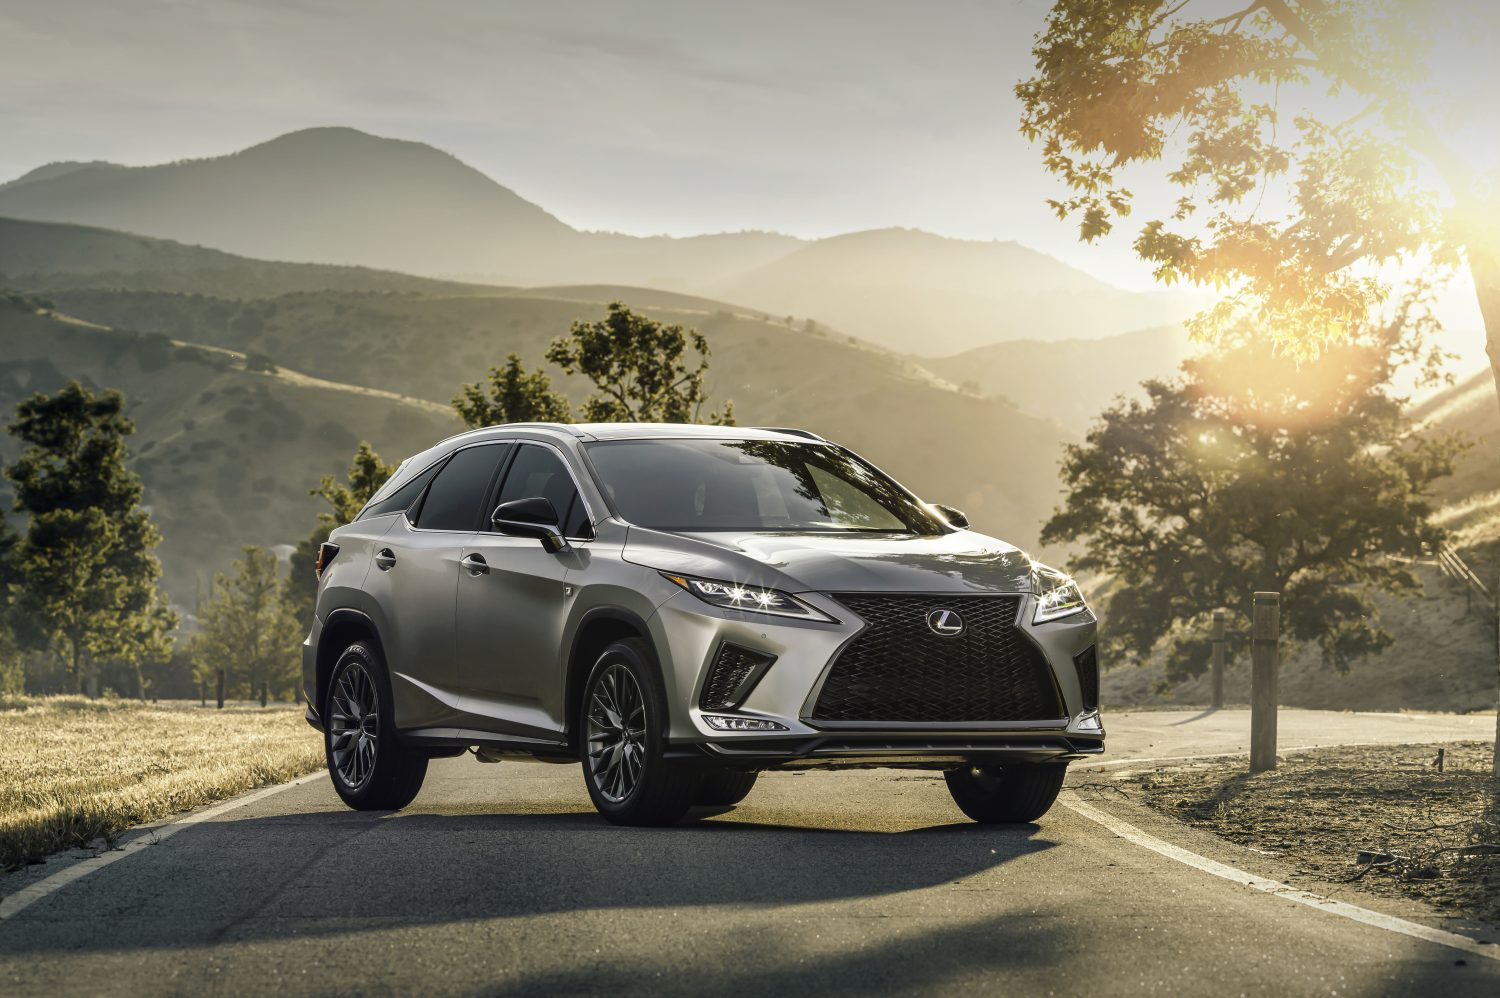 The Original Luxury Crossover: 2020 Lexus RX and RXL Deliver